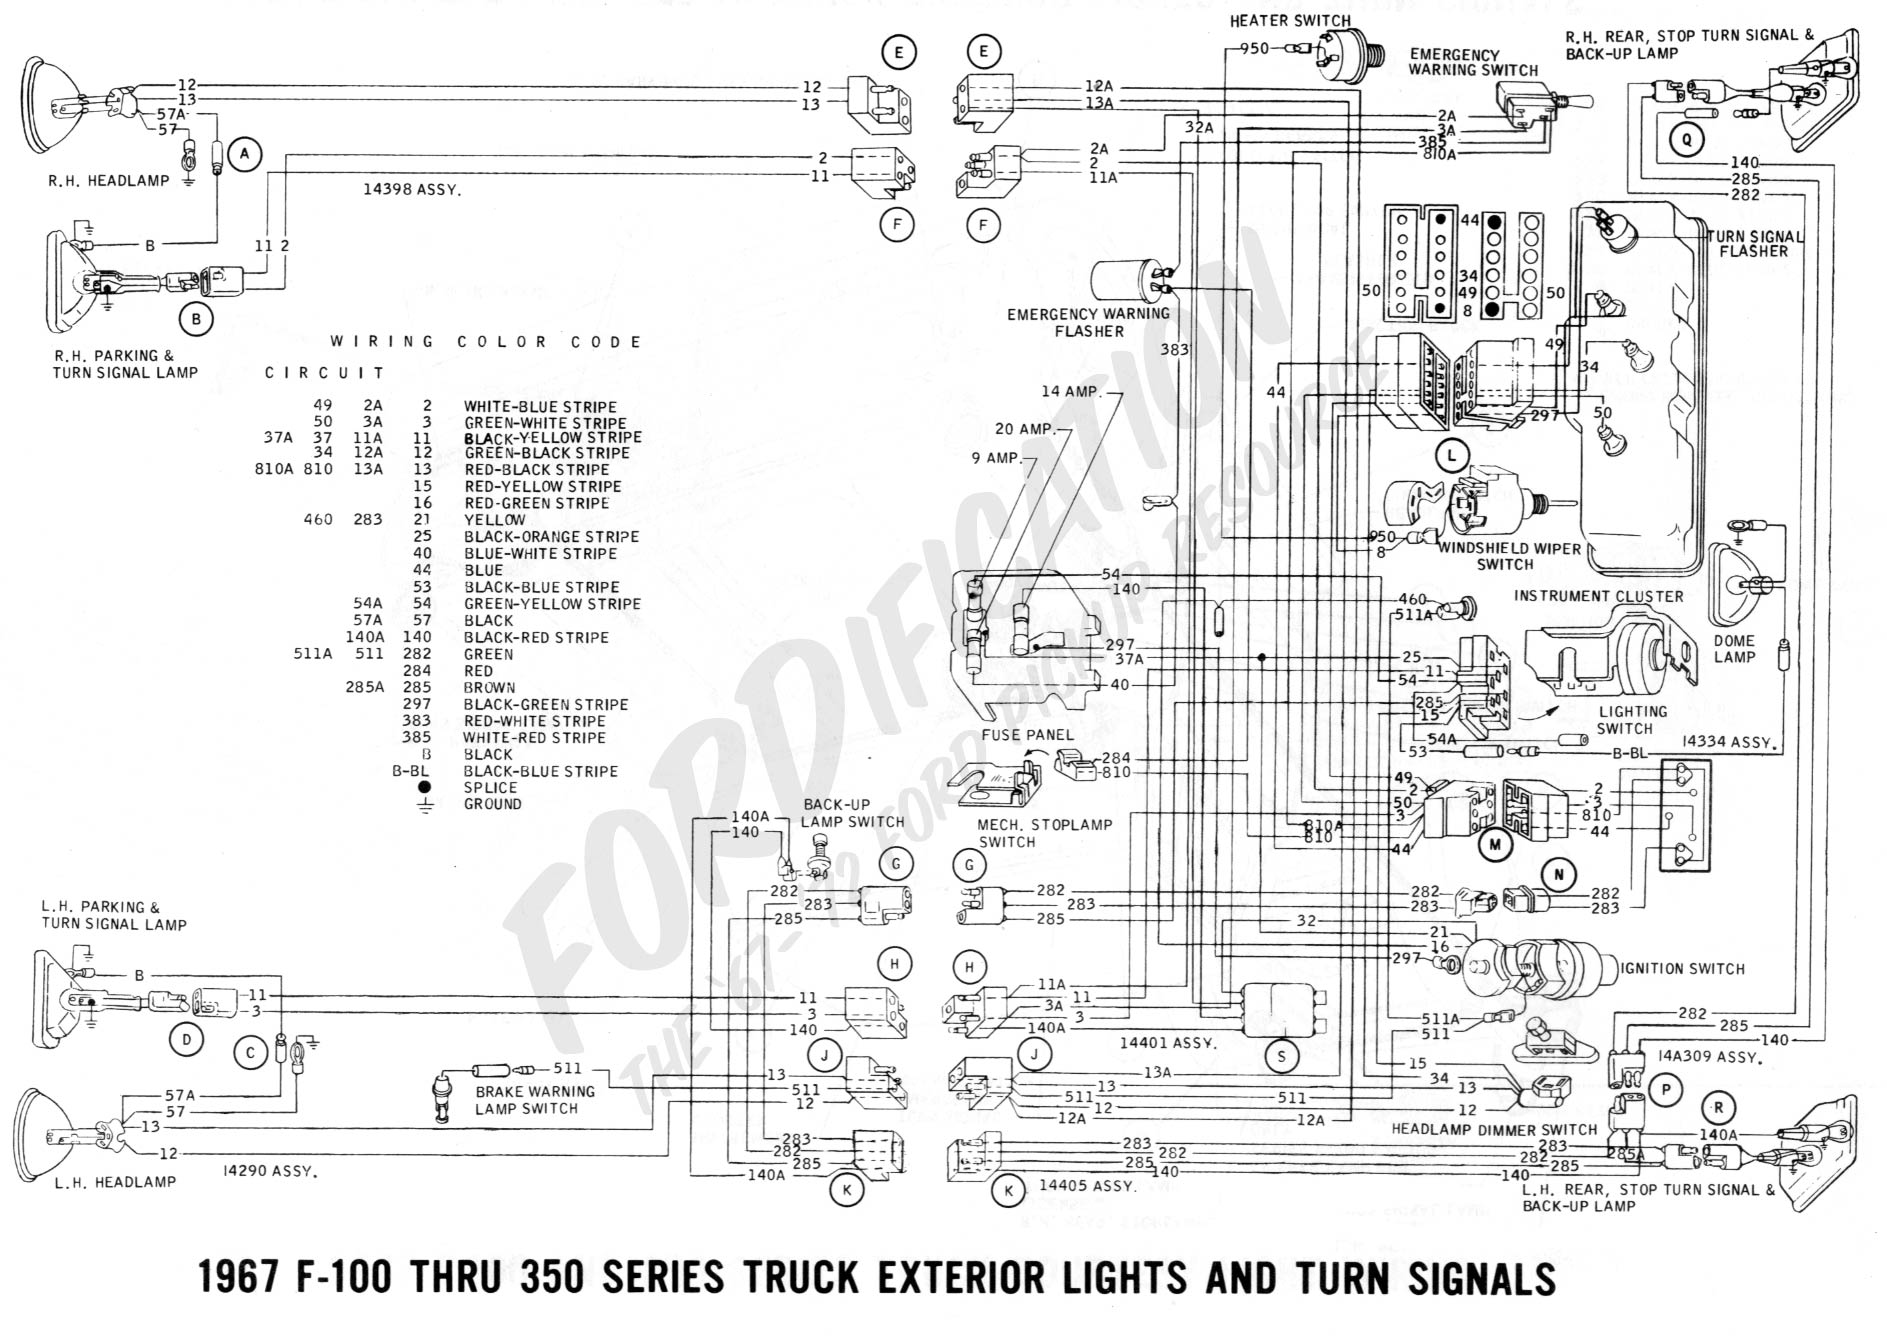 ford truck technical drawings and schematics section h wiring rh fordification com 67 ford f100 alternator wiring diagram 1967 ford f100 turn signal wiring diagram